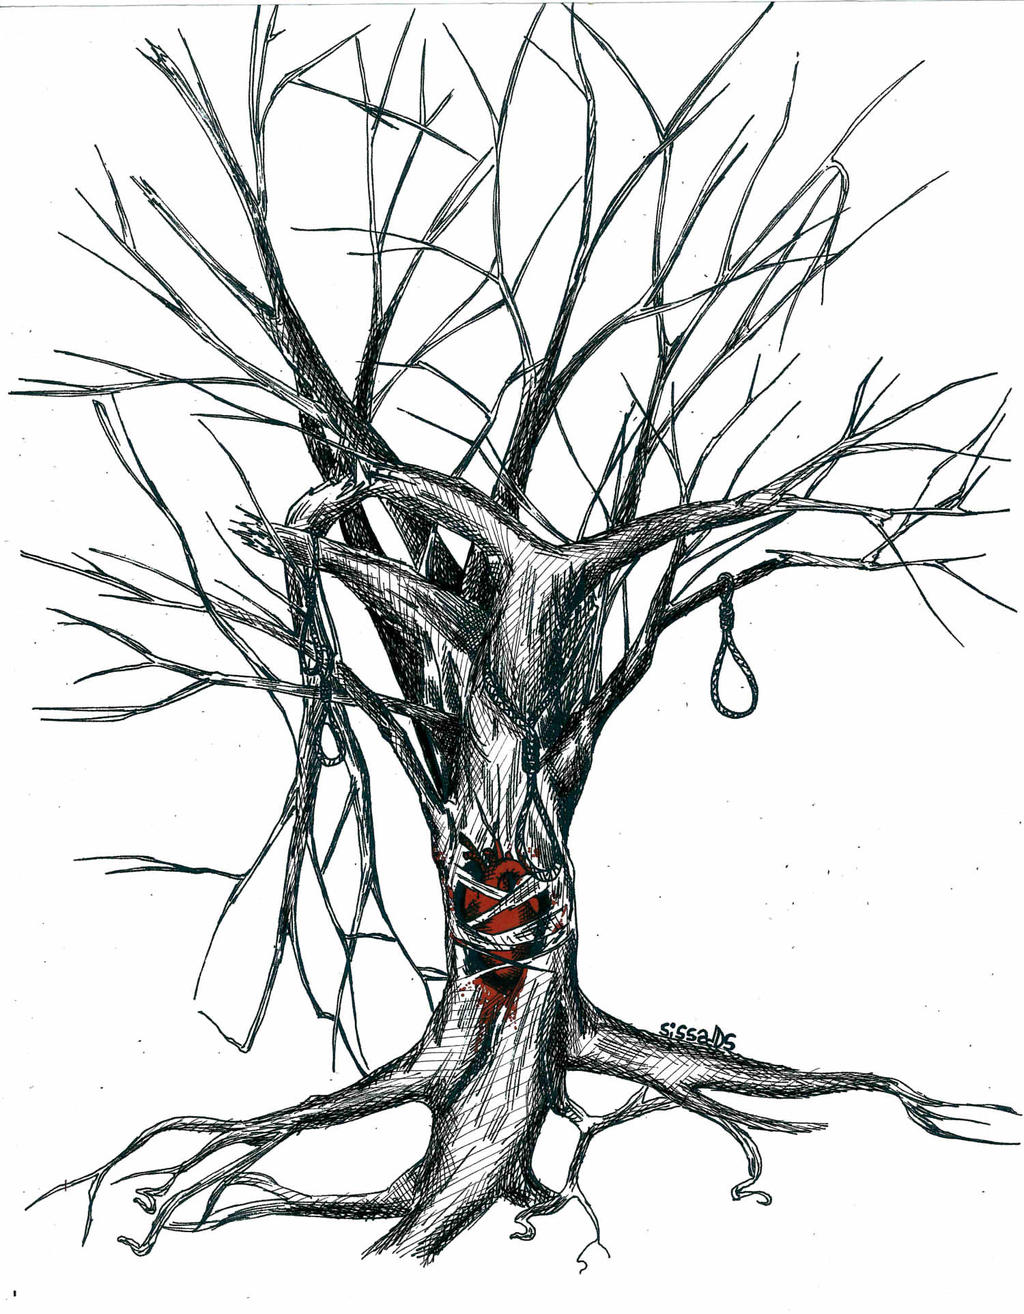 dead tree comission third one by sissadds on deviantart